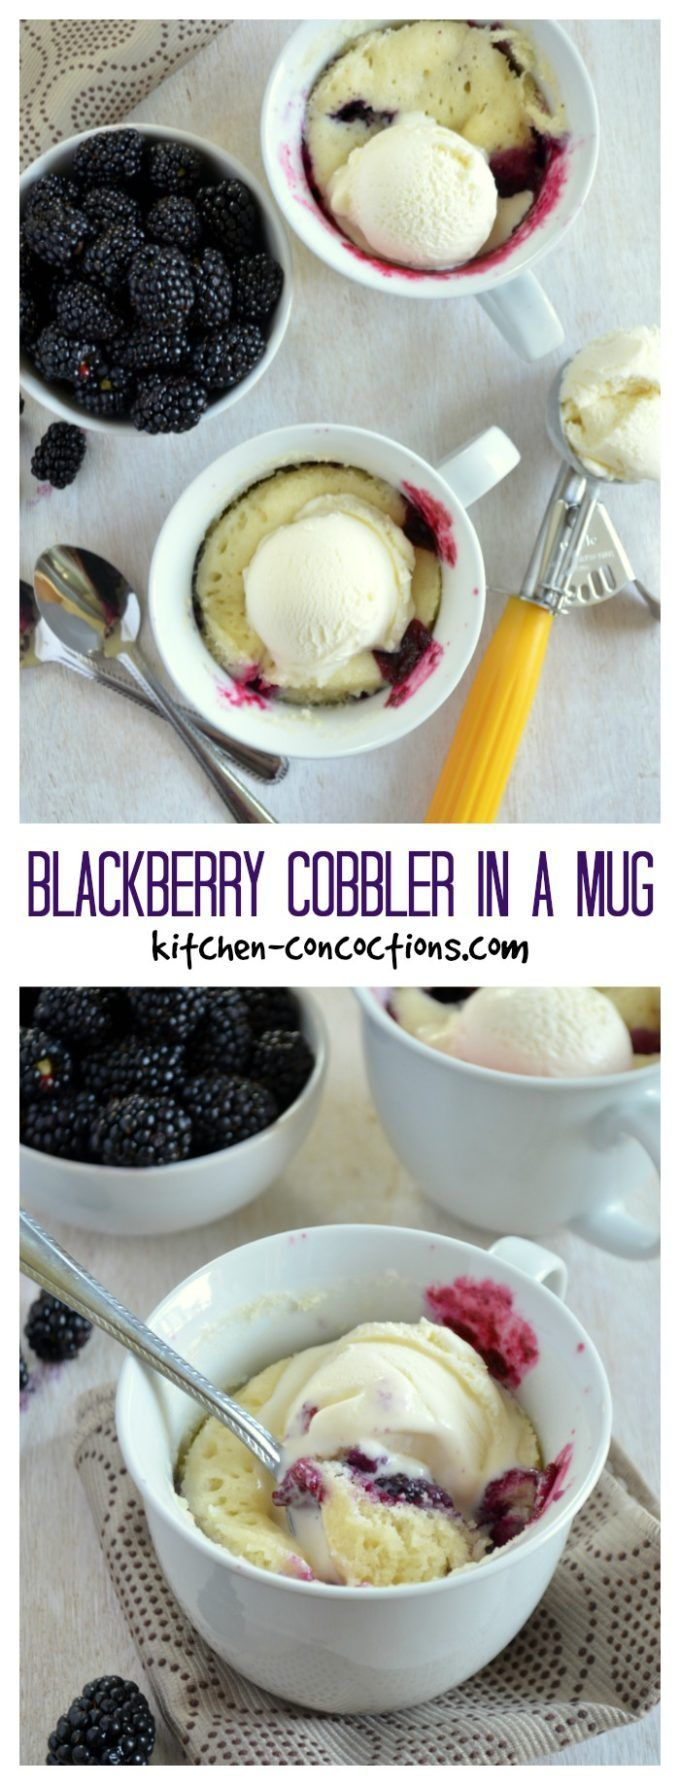 Blackberry Cobbler in a Mug {Plus a Microwave Cleaning Hack} - Got a late night craving for a sweet treat? Whip up this easy Blackberry Cobbler in a Mug in less than 5 minutes! Plus check out a speedy microwave cleaning hack to make clean up a breeze! #AD #ScrubbingPower #CollectiveBias @scotchbriteUS